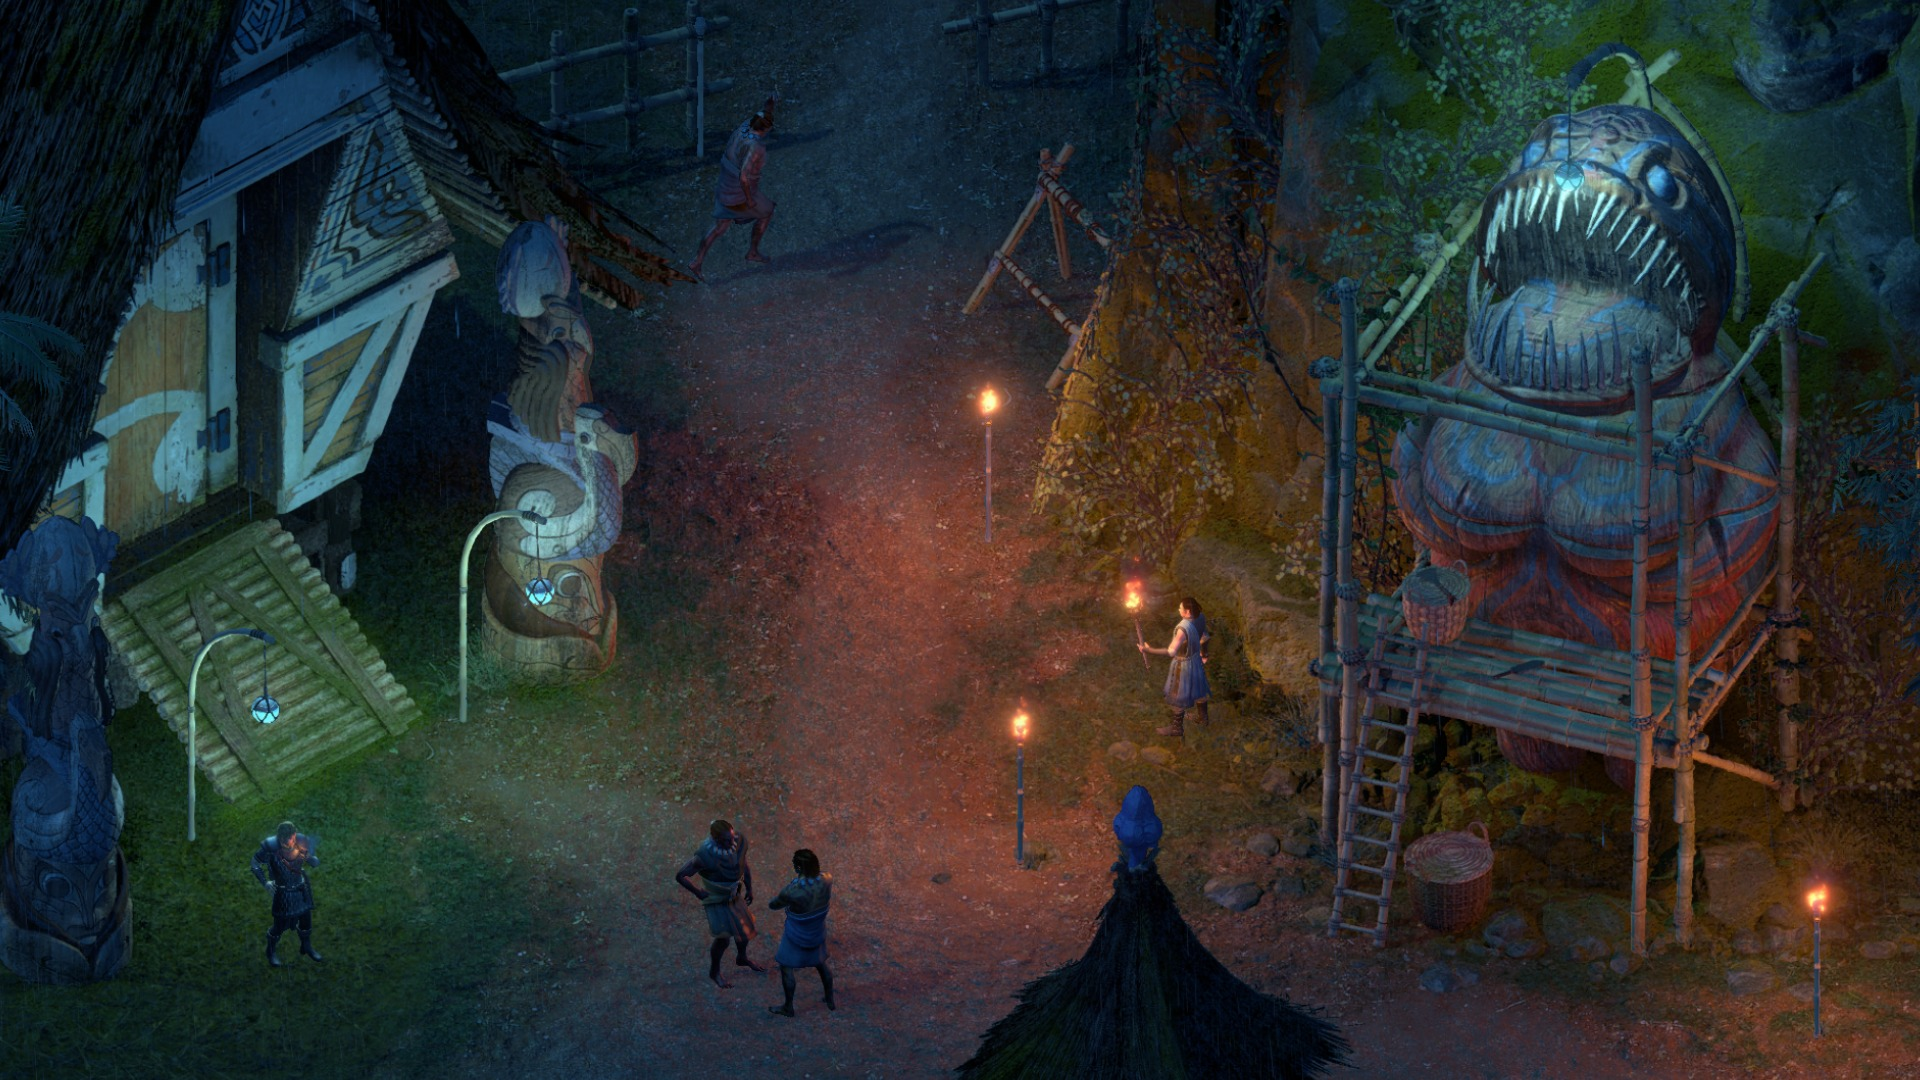 Pillars Of Eternity 2 Deadfire Wallpapers High Quality | Download Free